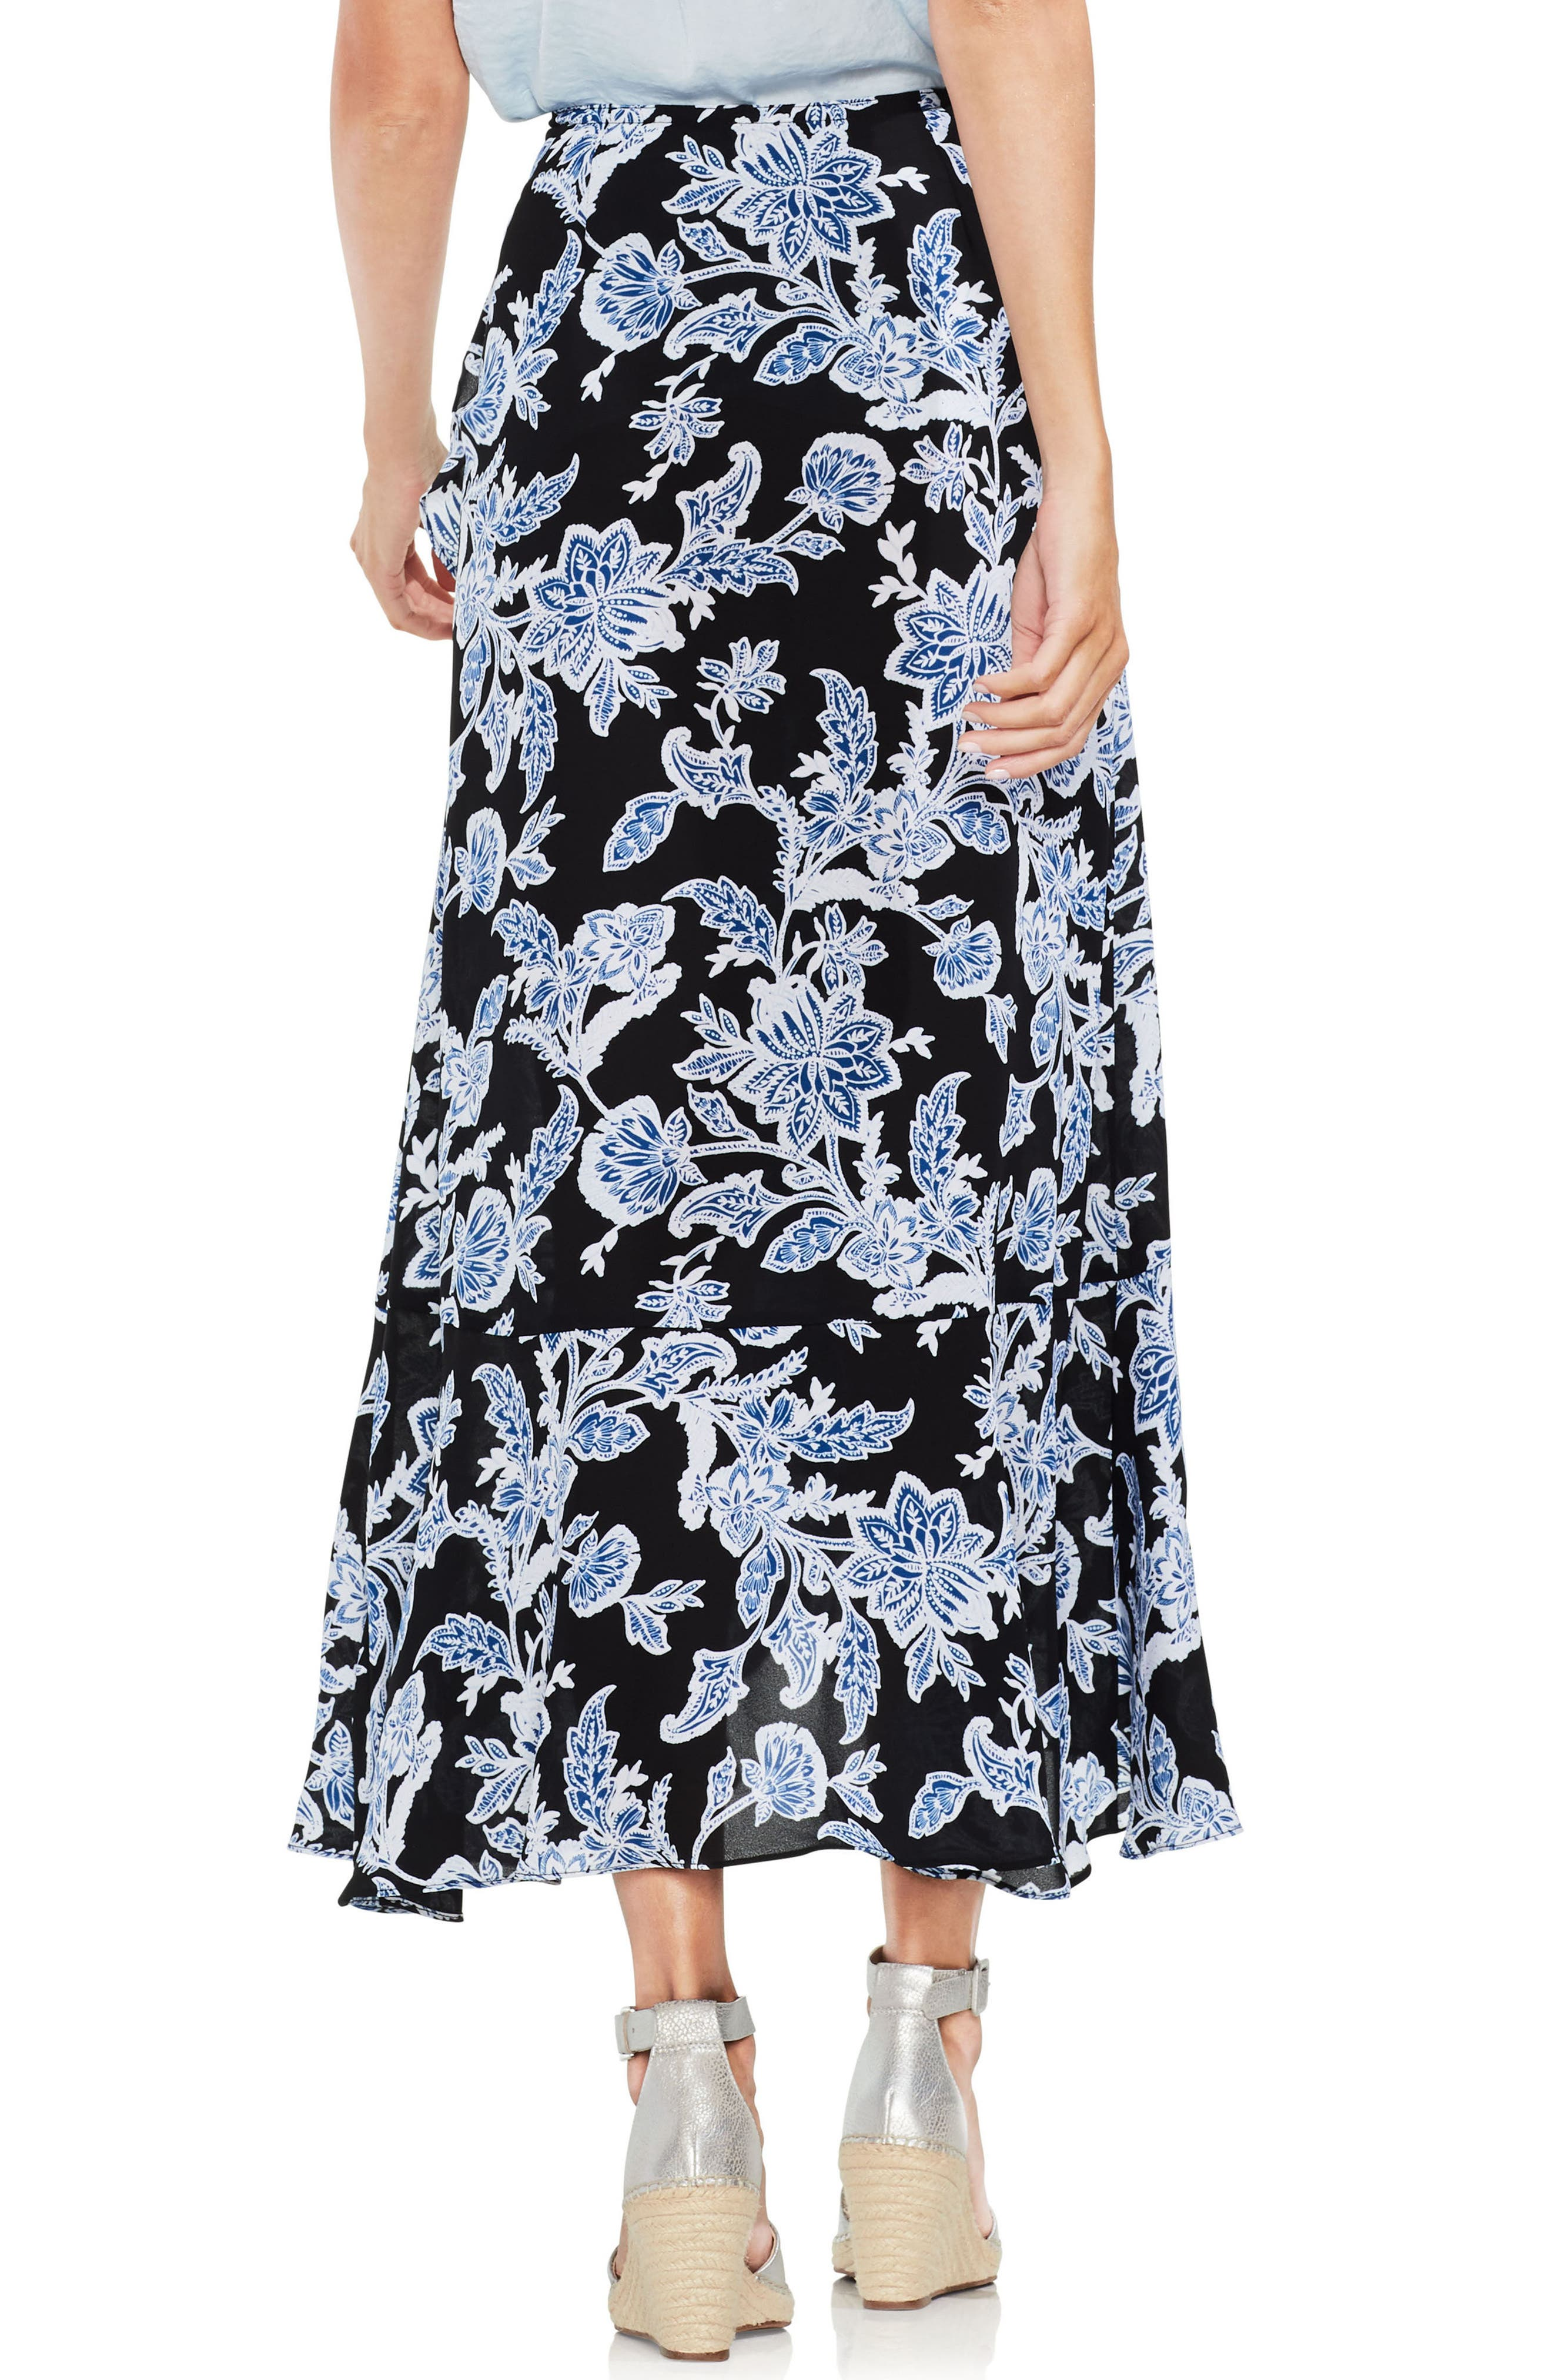 Ruffled Faux Wrap Floral Skirt,                             Alternate thumbnail 2, color,                             001